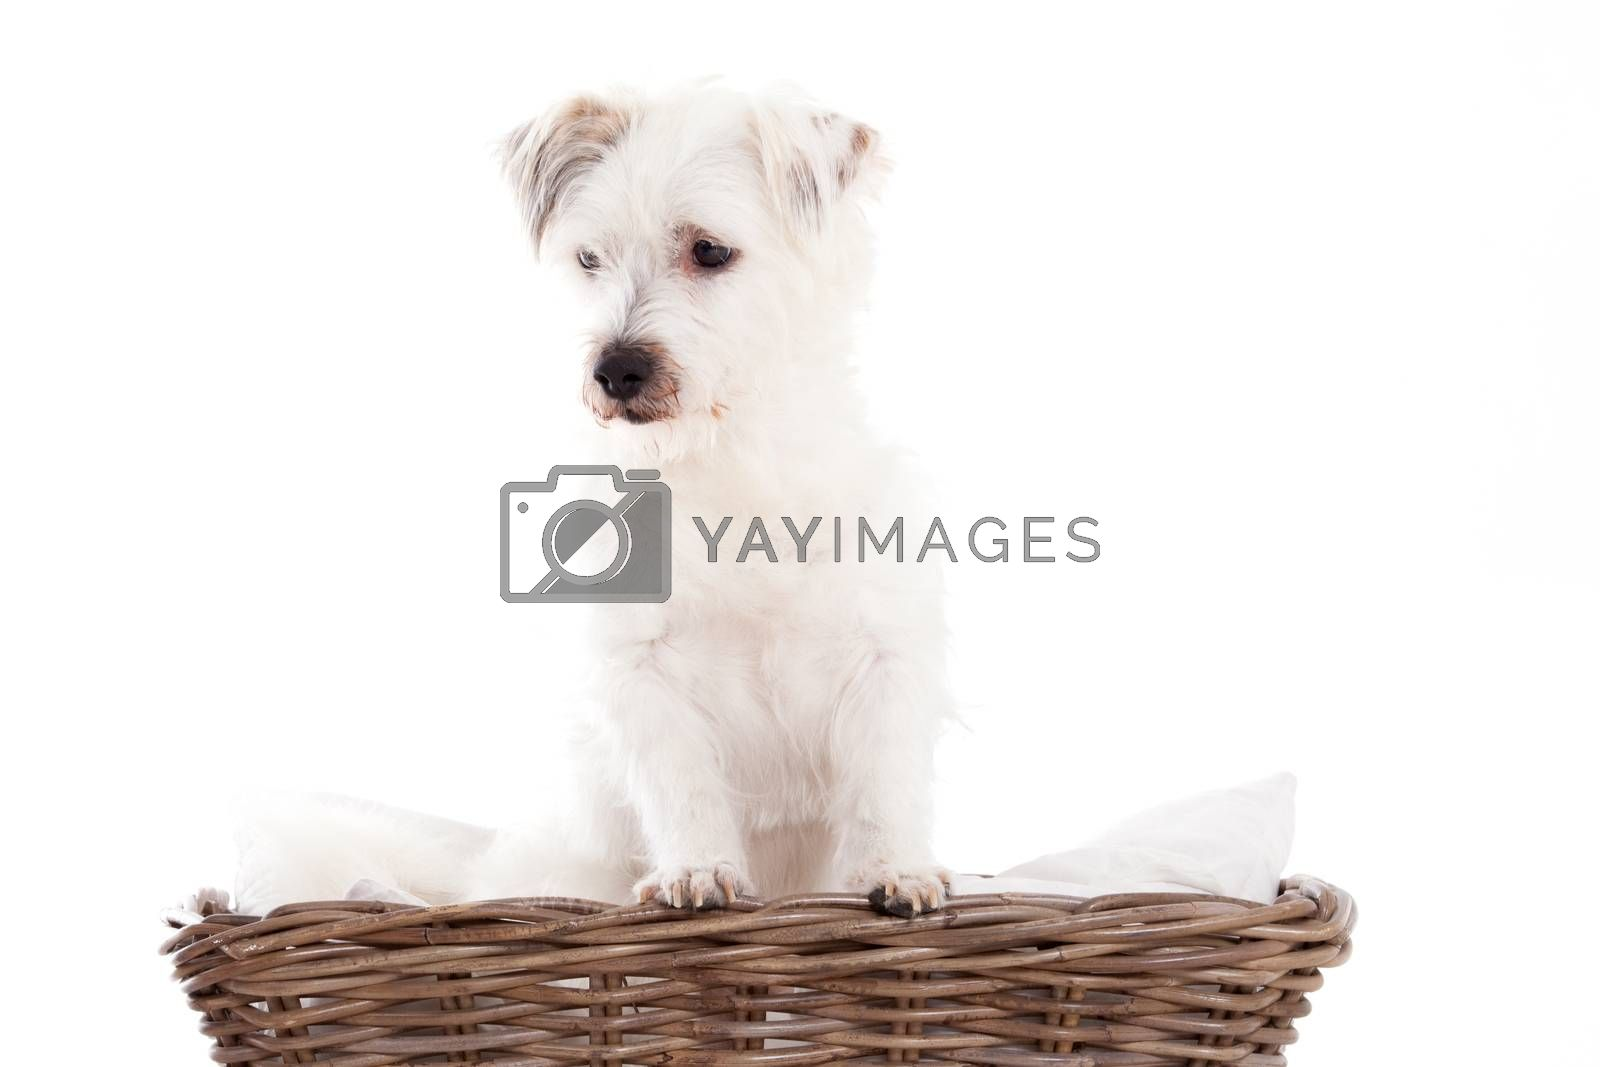 Dog in basket by DNFStyle